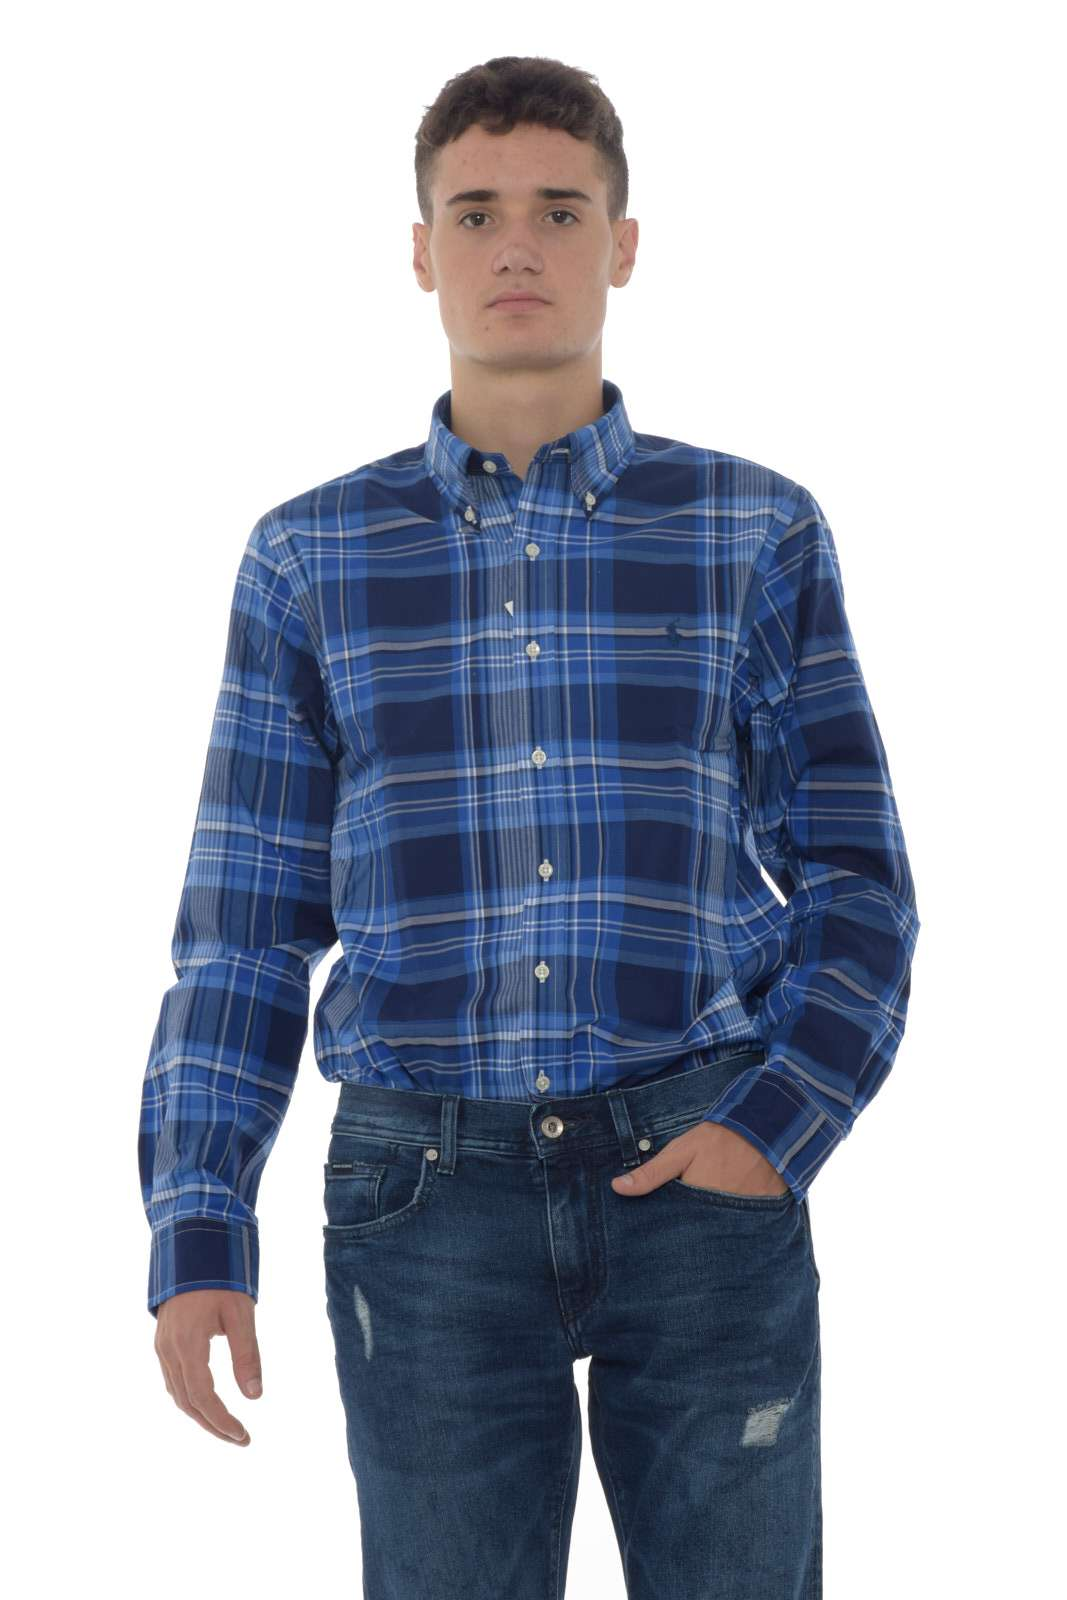 https://www.parmax.com/media/catalog/product/a/i/AI-outlet_parmax-camicia-uomo-Ralph-Lauren-710767330001-A.jpg